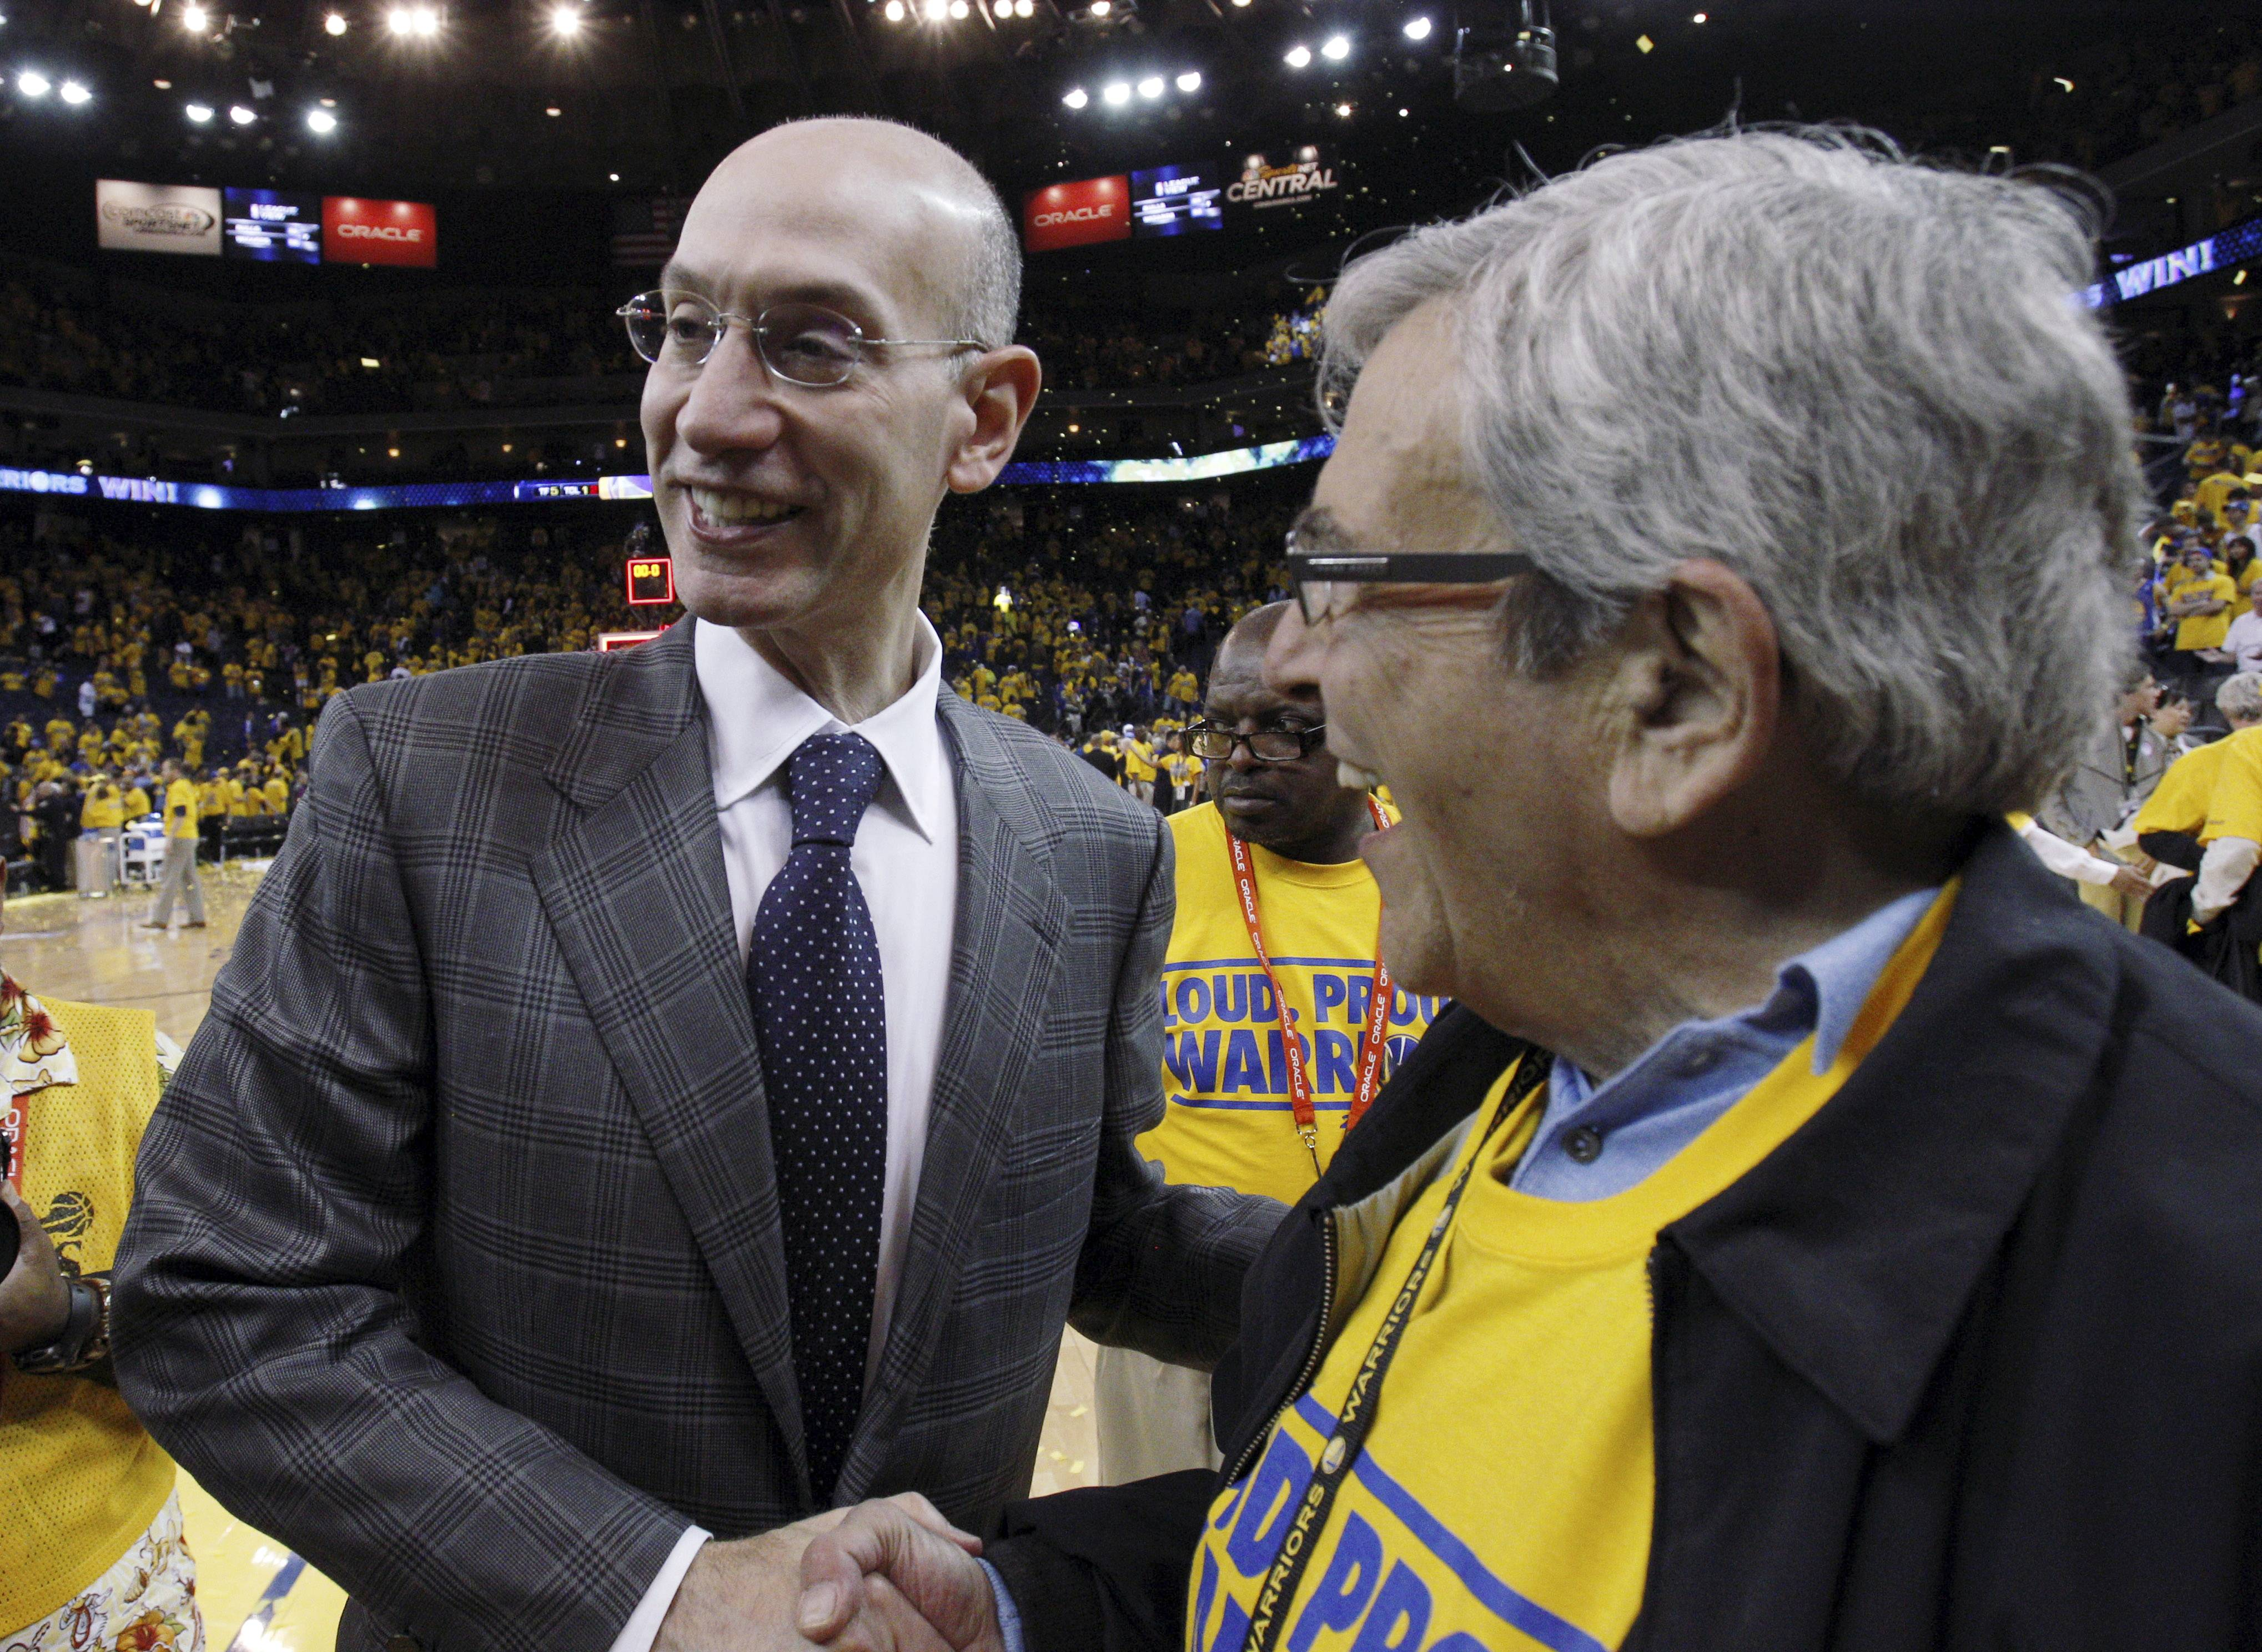 NBA commissioner Adam Silver, left, shakes hands with a fan after Game 4 of an opening-round NBA basketball playoff series between the Golden State Warriors and Los Angeles Clippers on Sunday in Oakland, Calif.